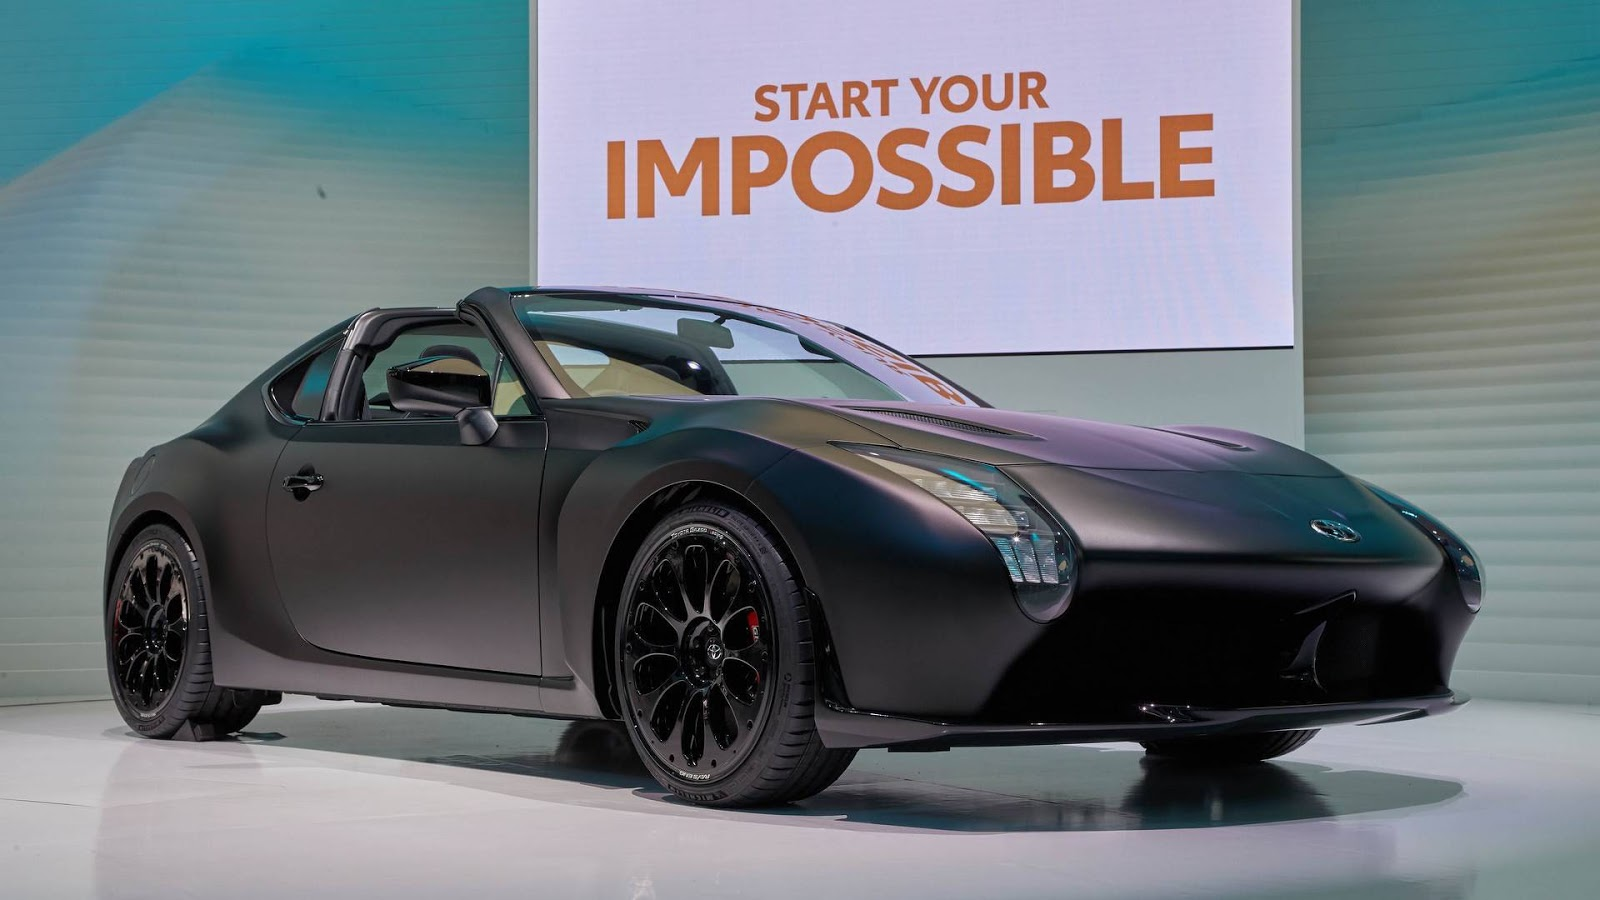 Toyota Gr Hv Sport Concept Made Its Debut At The 45th Tokyo Motor Show 2017 Picture From Http Bit Ly 2ce1zf8